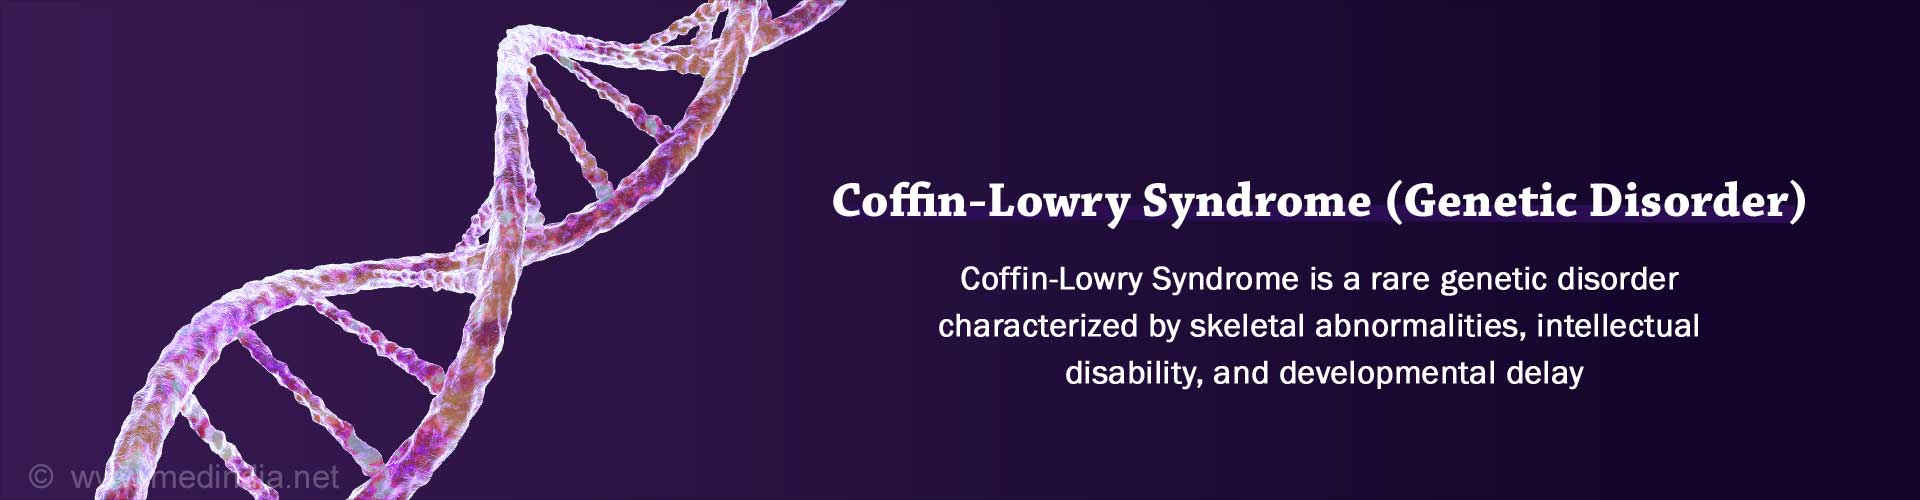 Coffin-Lowry Syndrome - Causes, Symptoms, Diagnosis, Treatment, Health Tips